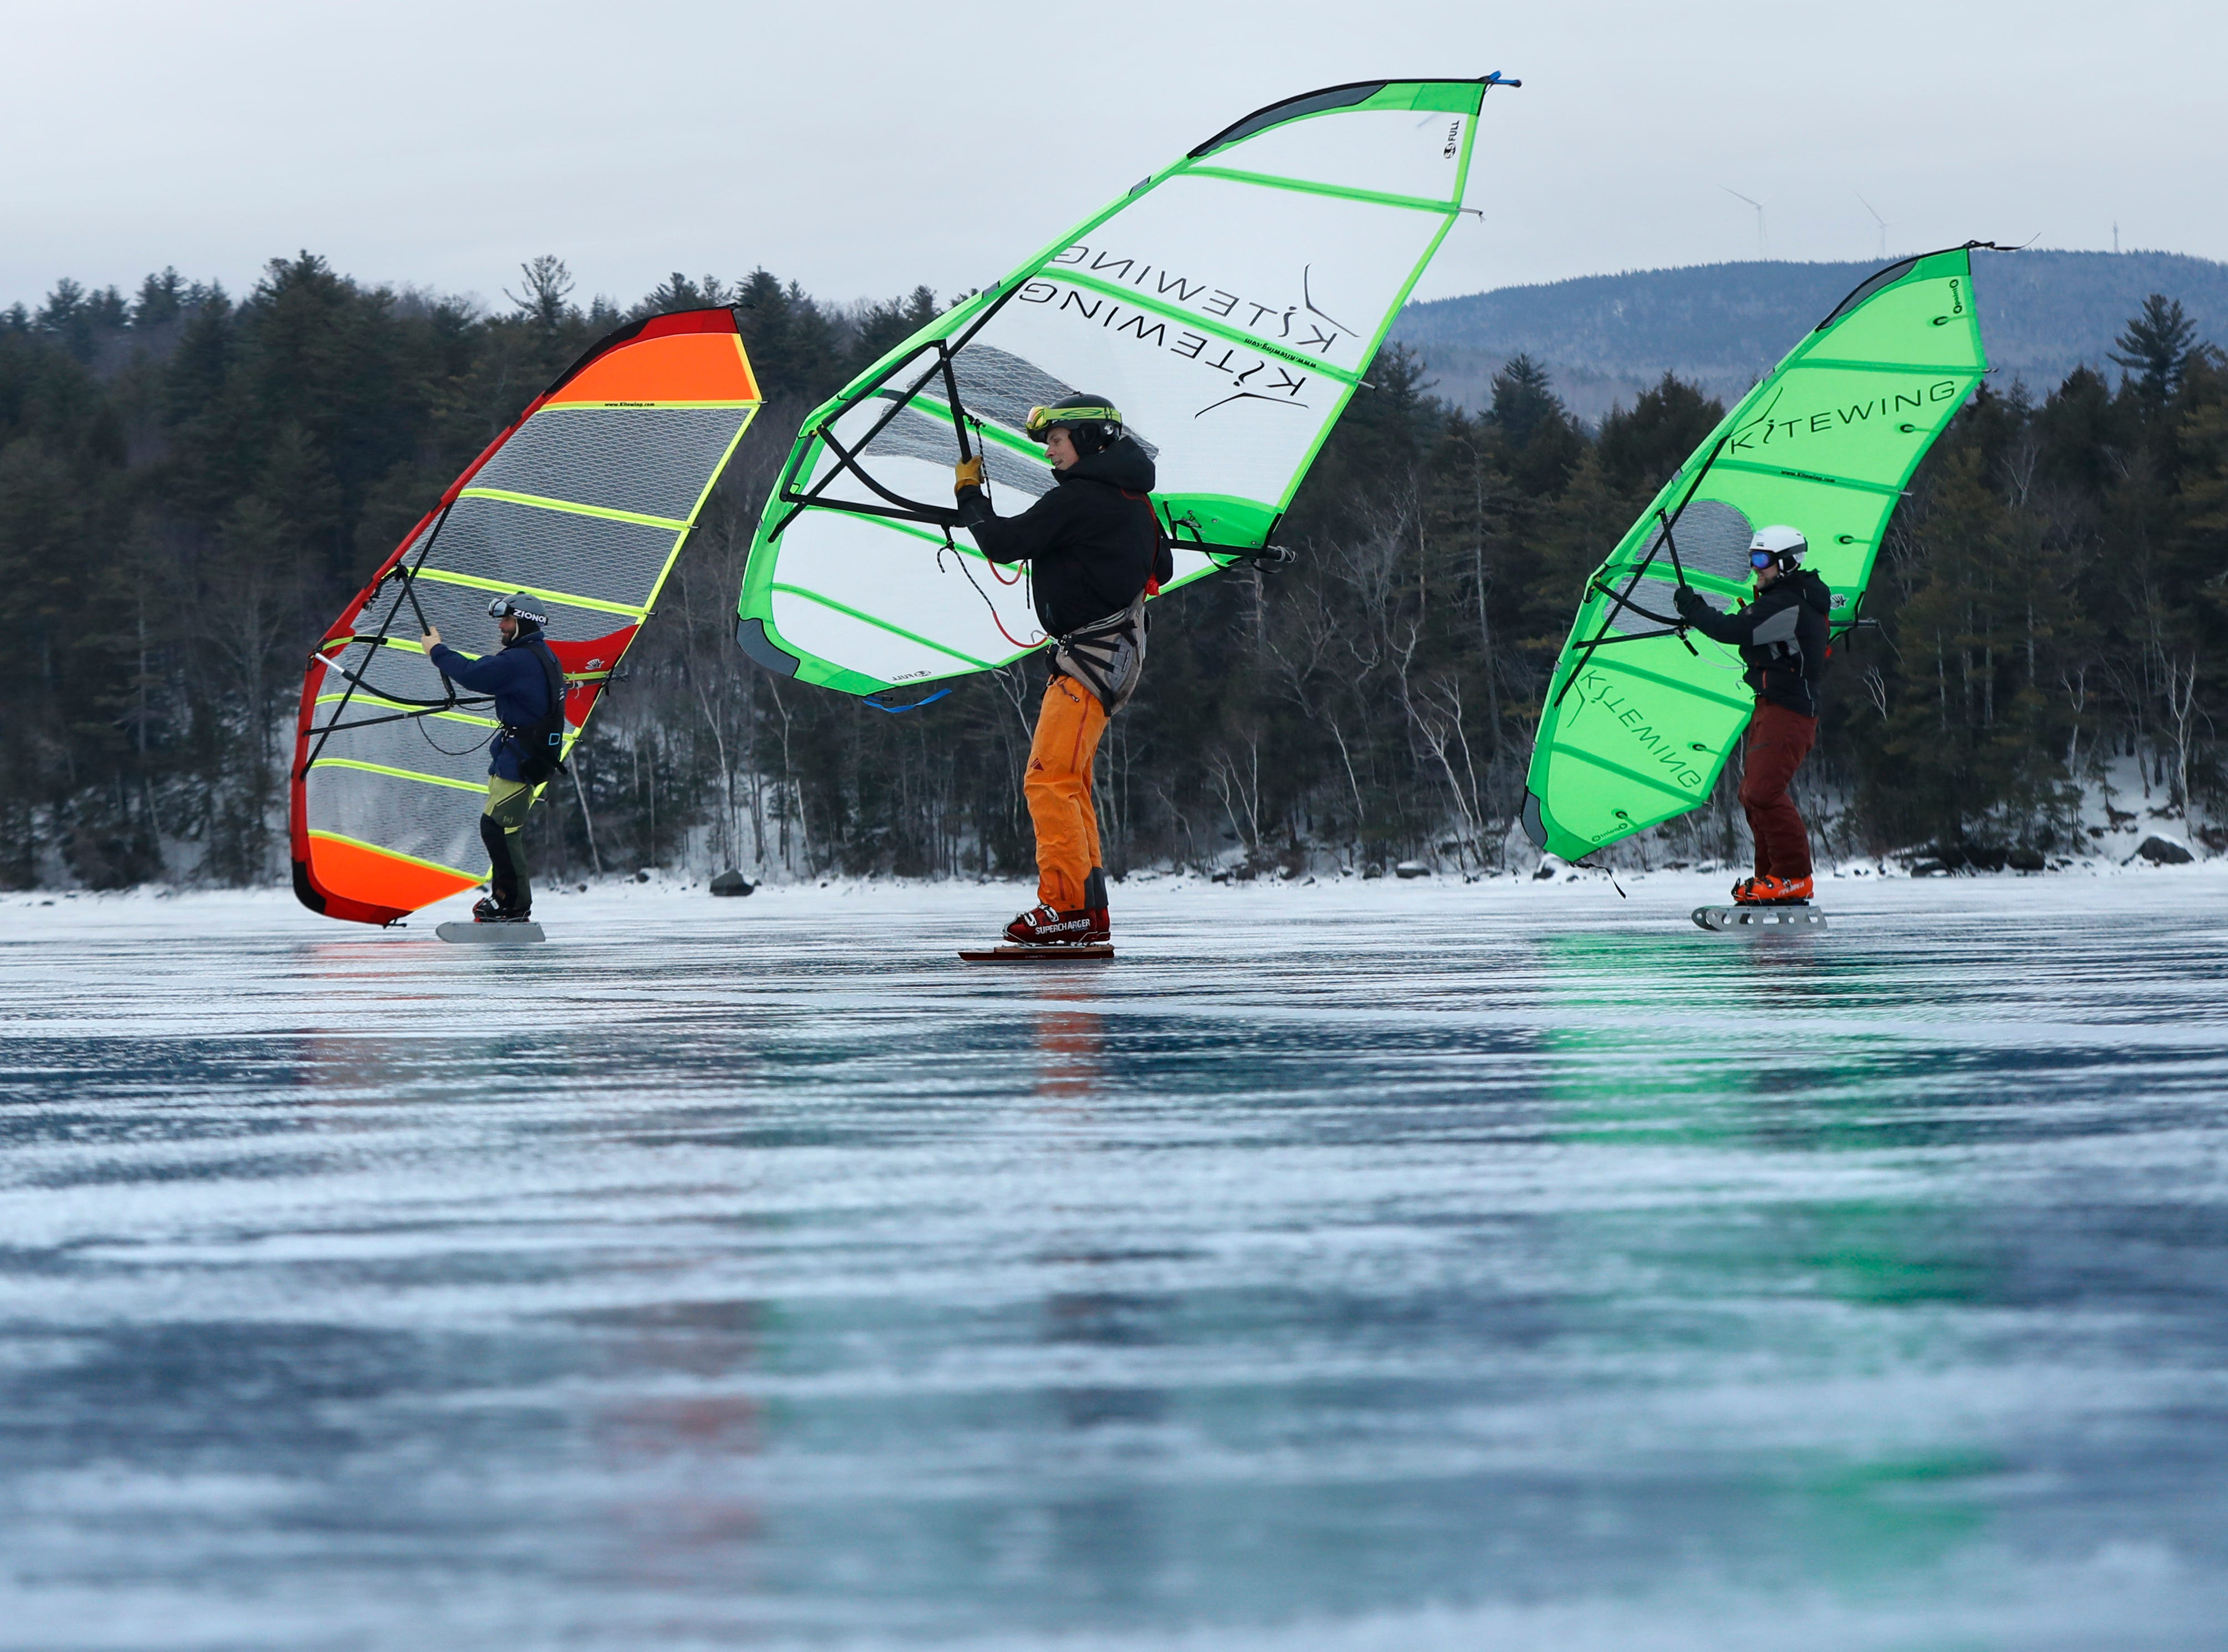 "Kitewing sailors travel on Newfound Lake, Sunday, Jan. 27, 2019, in Hebron, N.H. ""New Hampshire lakes have the best ice,"" said rider Martin Kimbel. ""There's no reason to go anywhere else."""